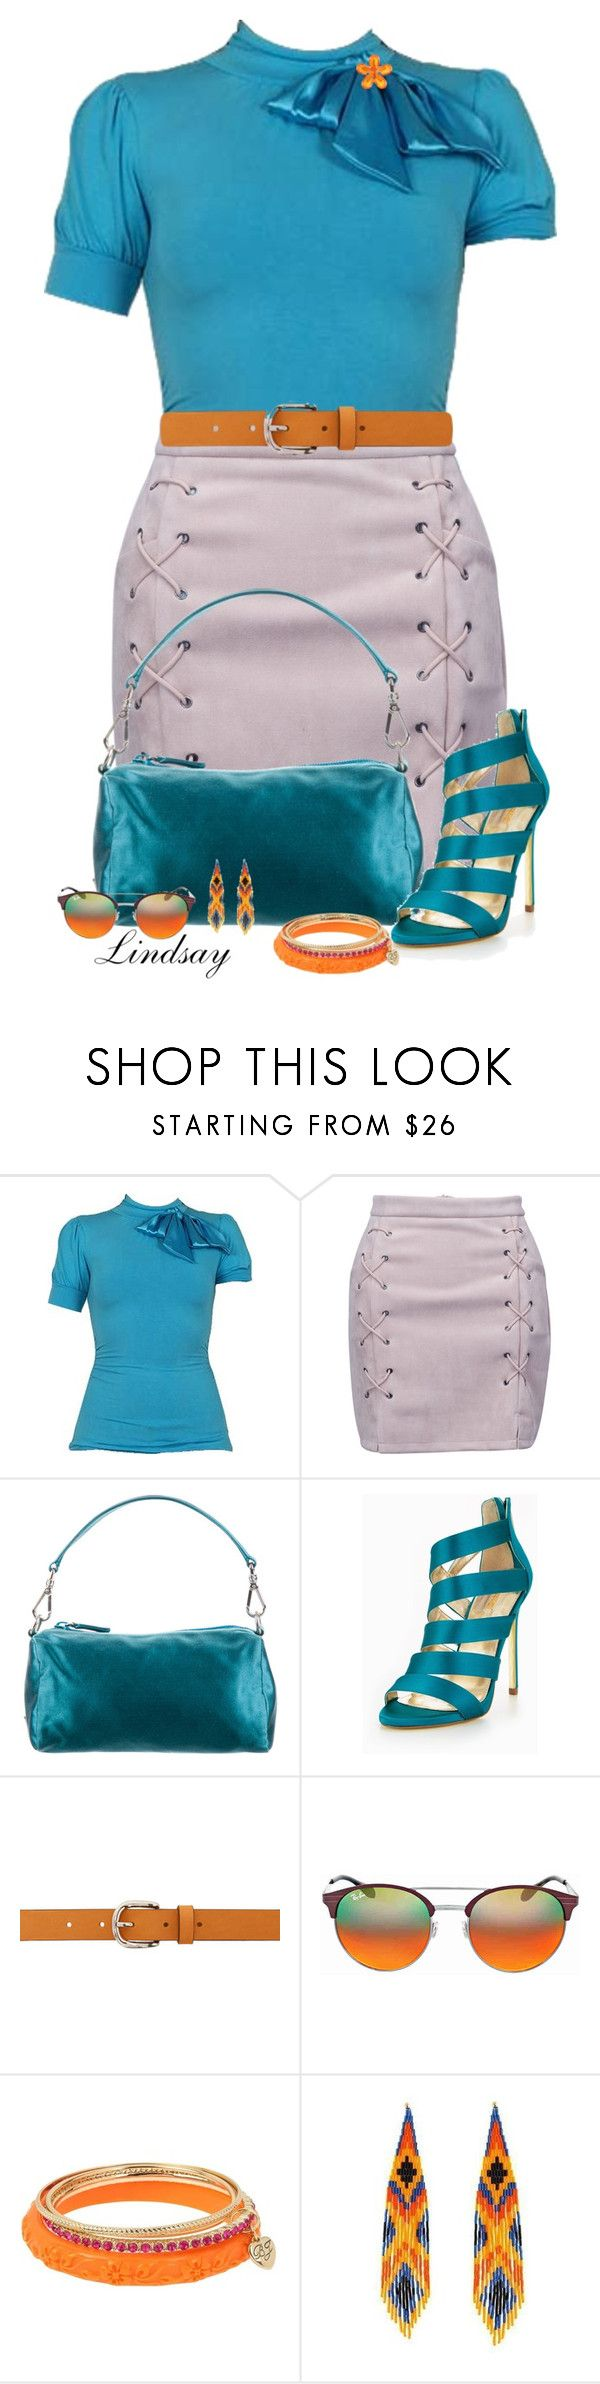 """""""Carvela Gleam Np Multistrap Heeled Sandals"""" by lindsayd78 ❤ liked on Polyvore featuring Rampage, WithChic, Prada, Carvela, Isabel Marant, Ray-Ban, Betsey Johnson, Forest of Chintz and Dsquared2"""